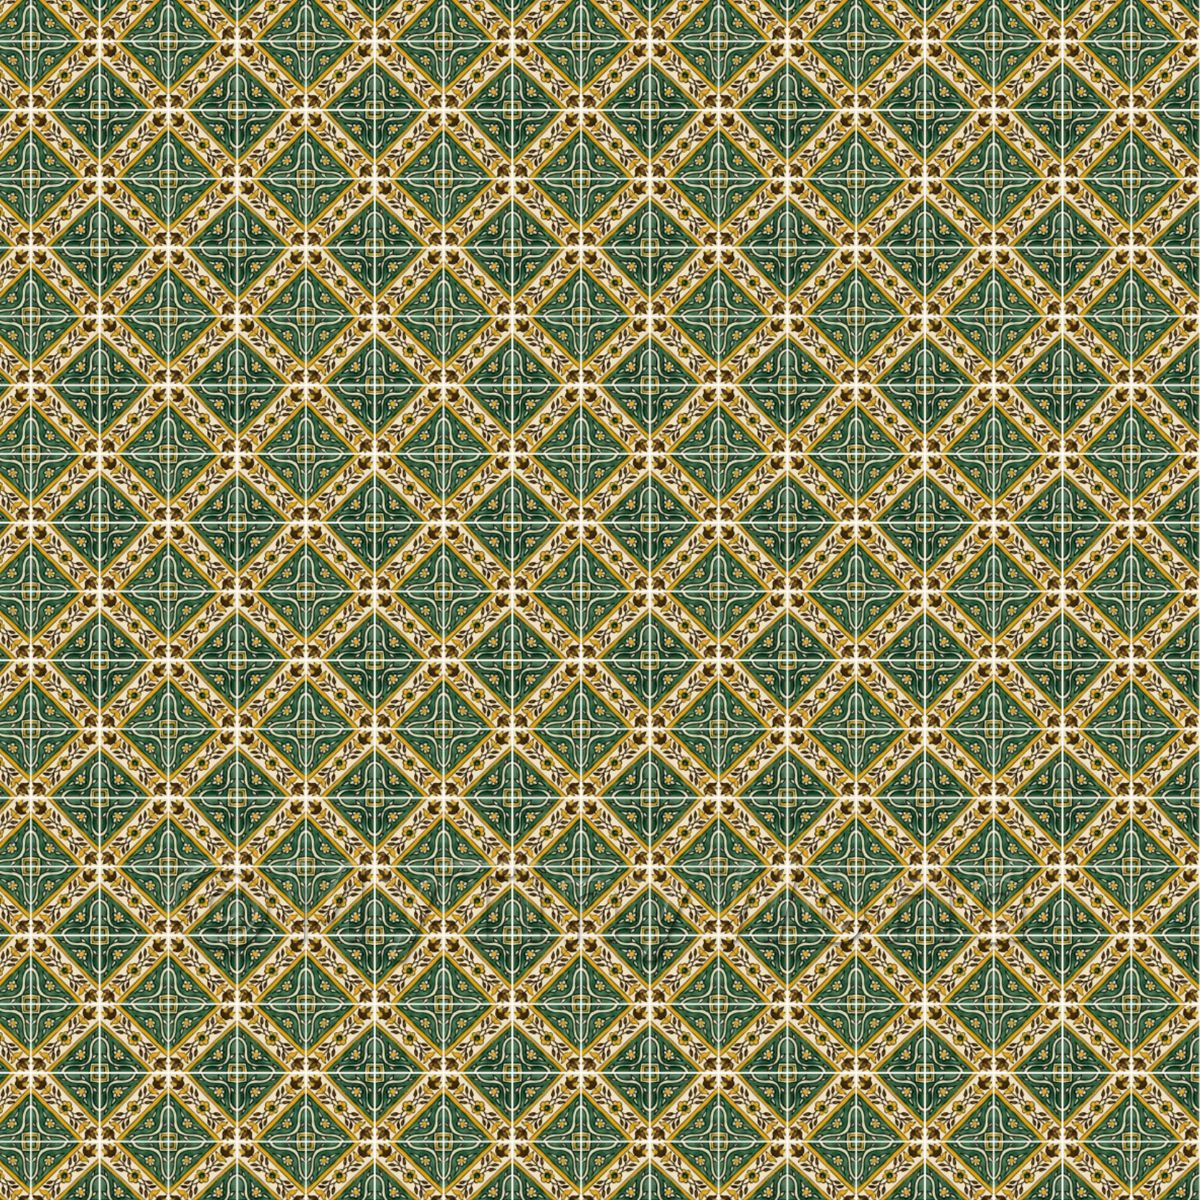 1:24th Green Star With Flower Border Tile Sheet With White Grout